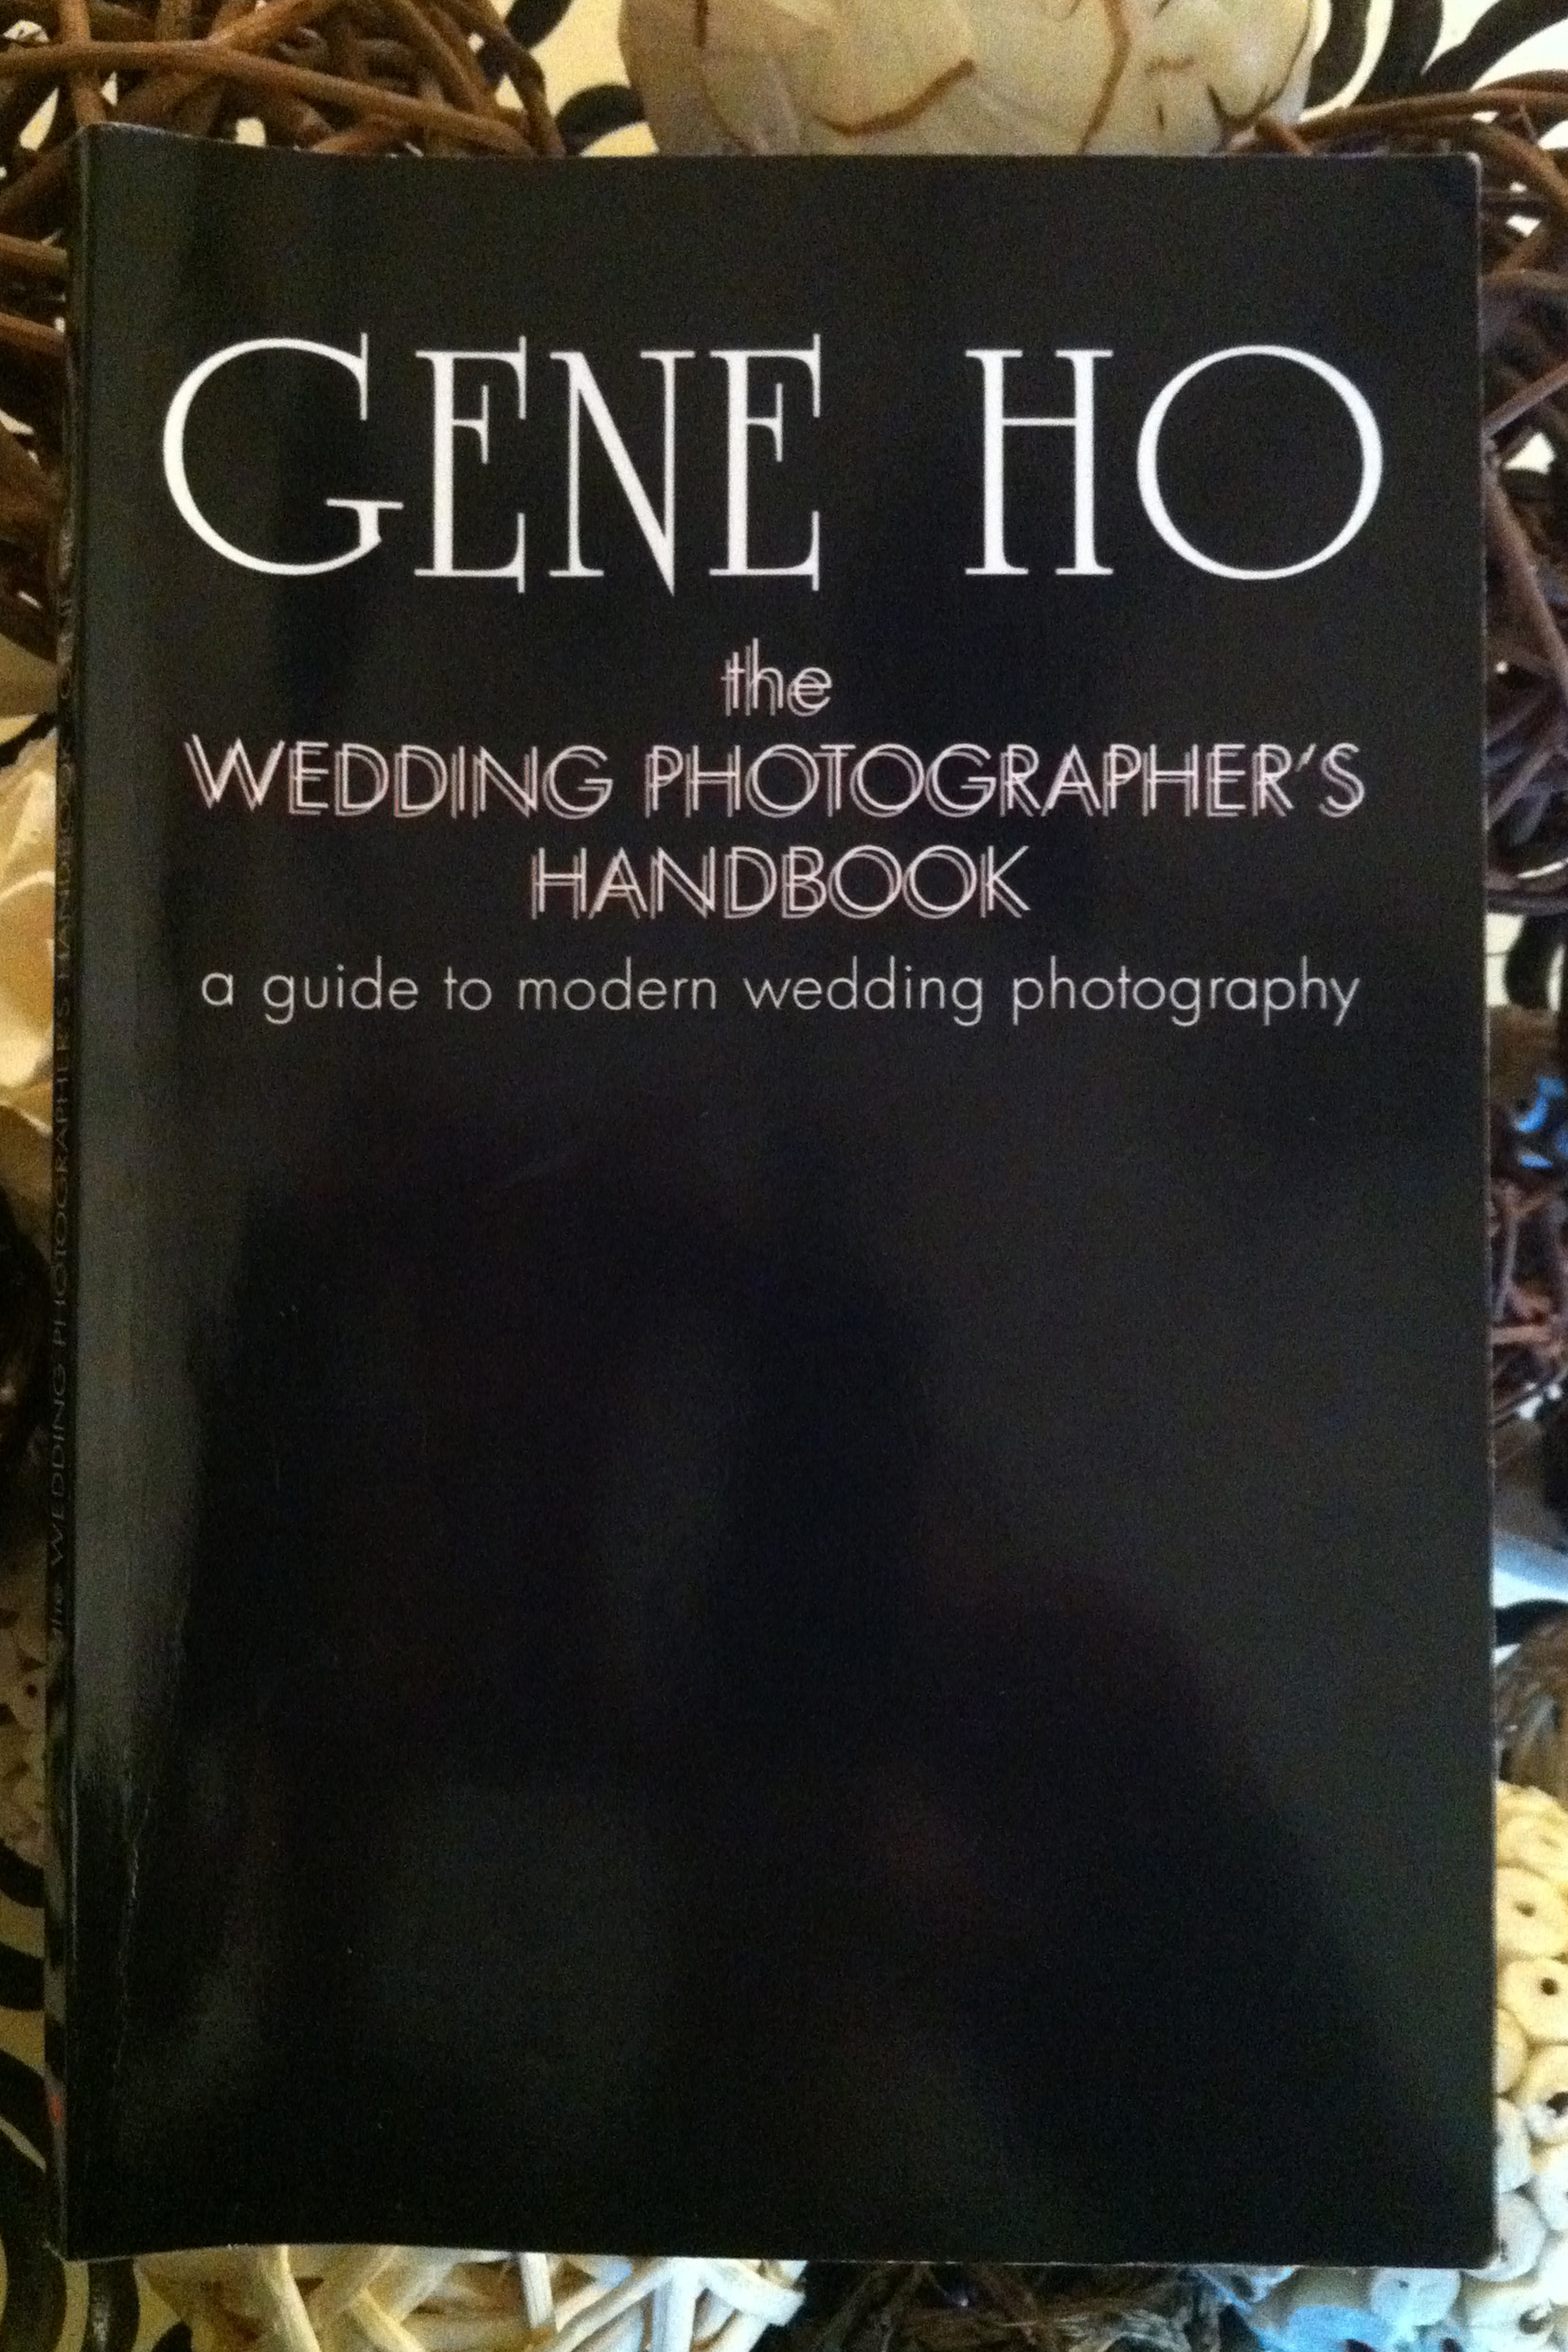 the wedding photographer's handbook: a guide to modern wedding photography